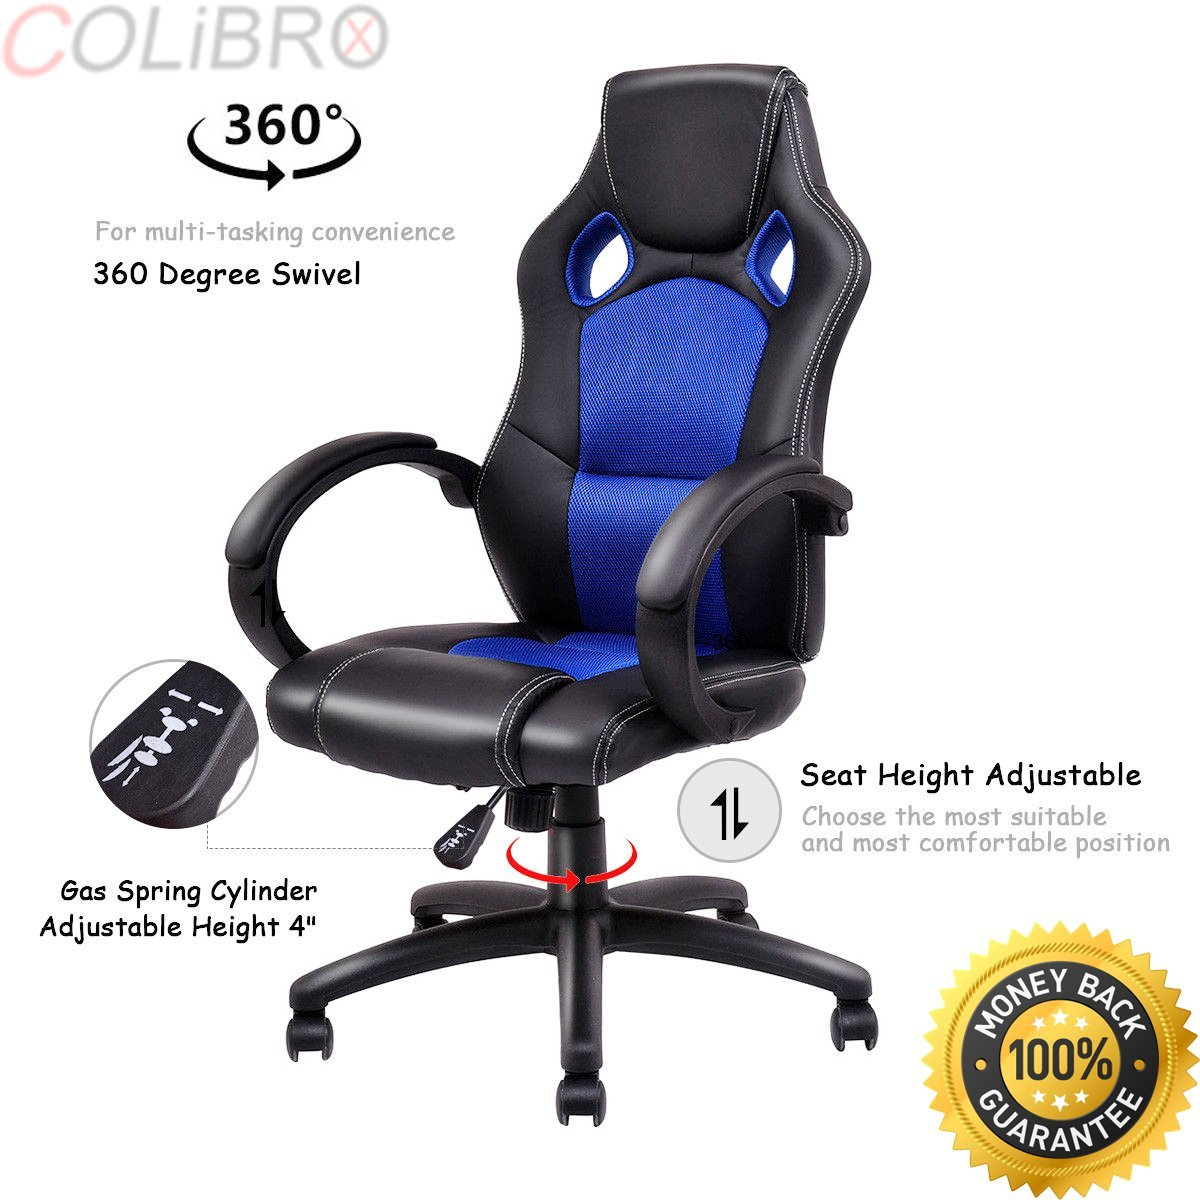 COLIBROX--High Back Racing Chair Bucket Seat Office Desk Gaming Chair Swivel Executive New. new high back racing car style bucket seat office desk chair gaming chair. amazon racing seat office chair.